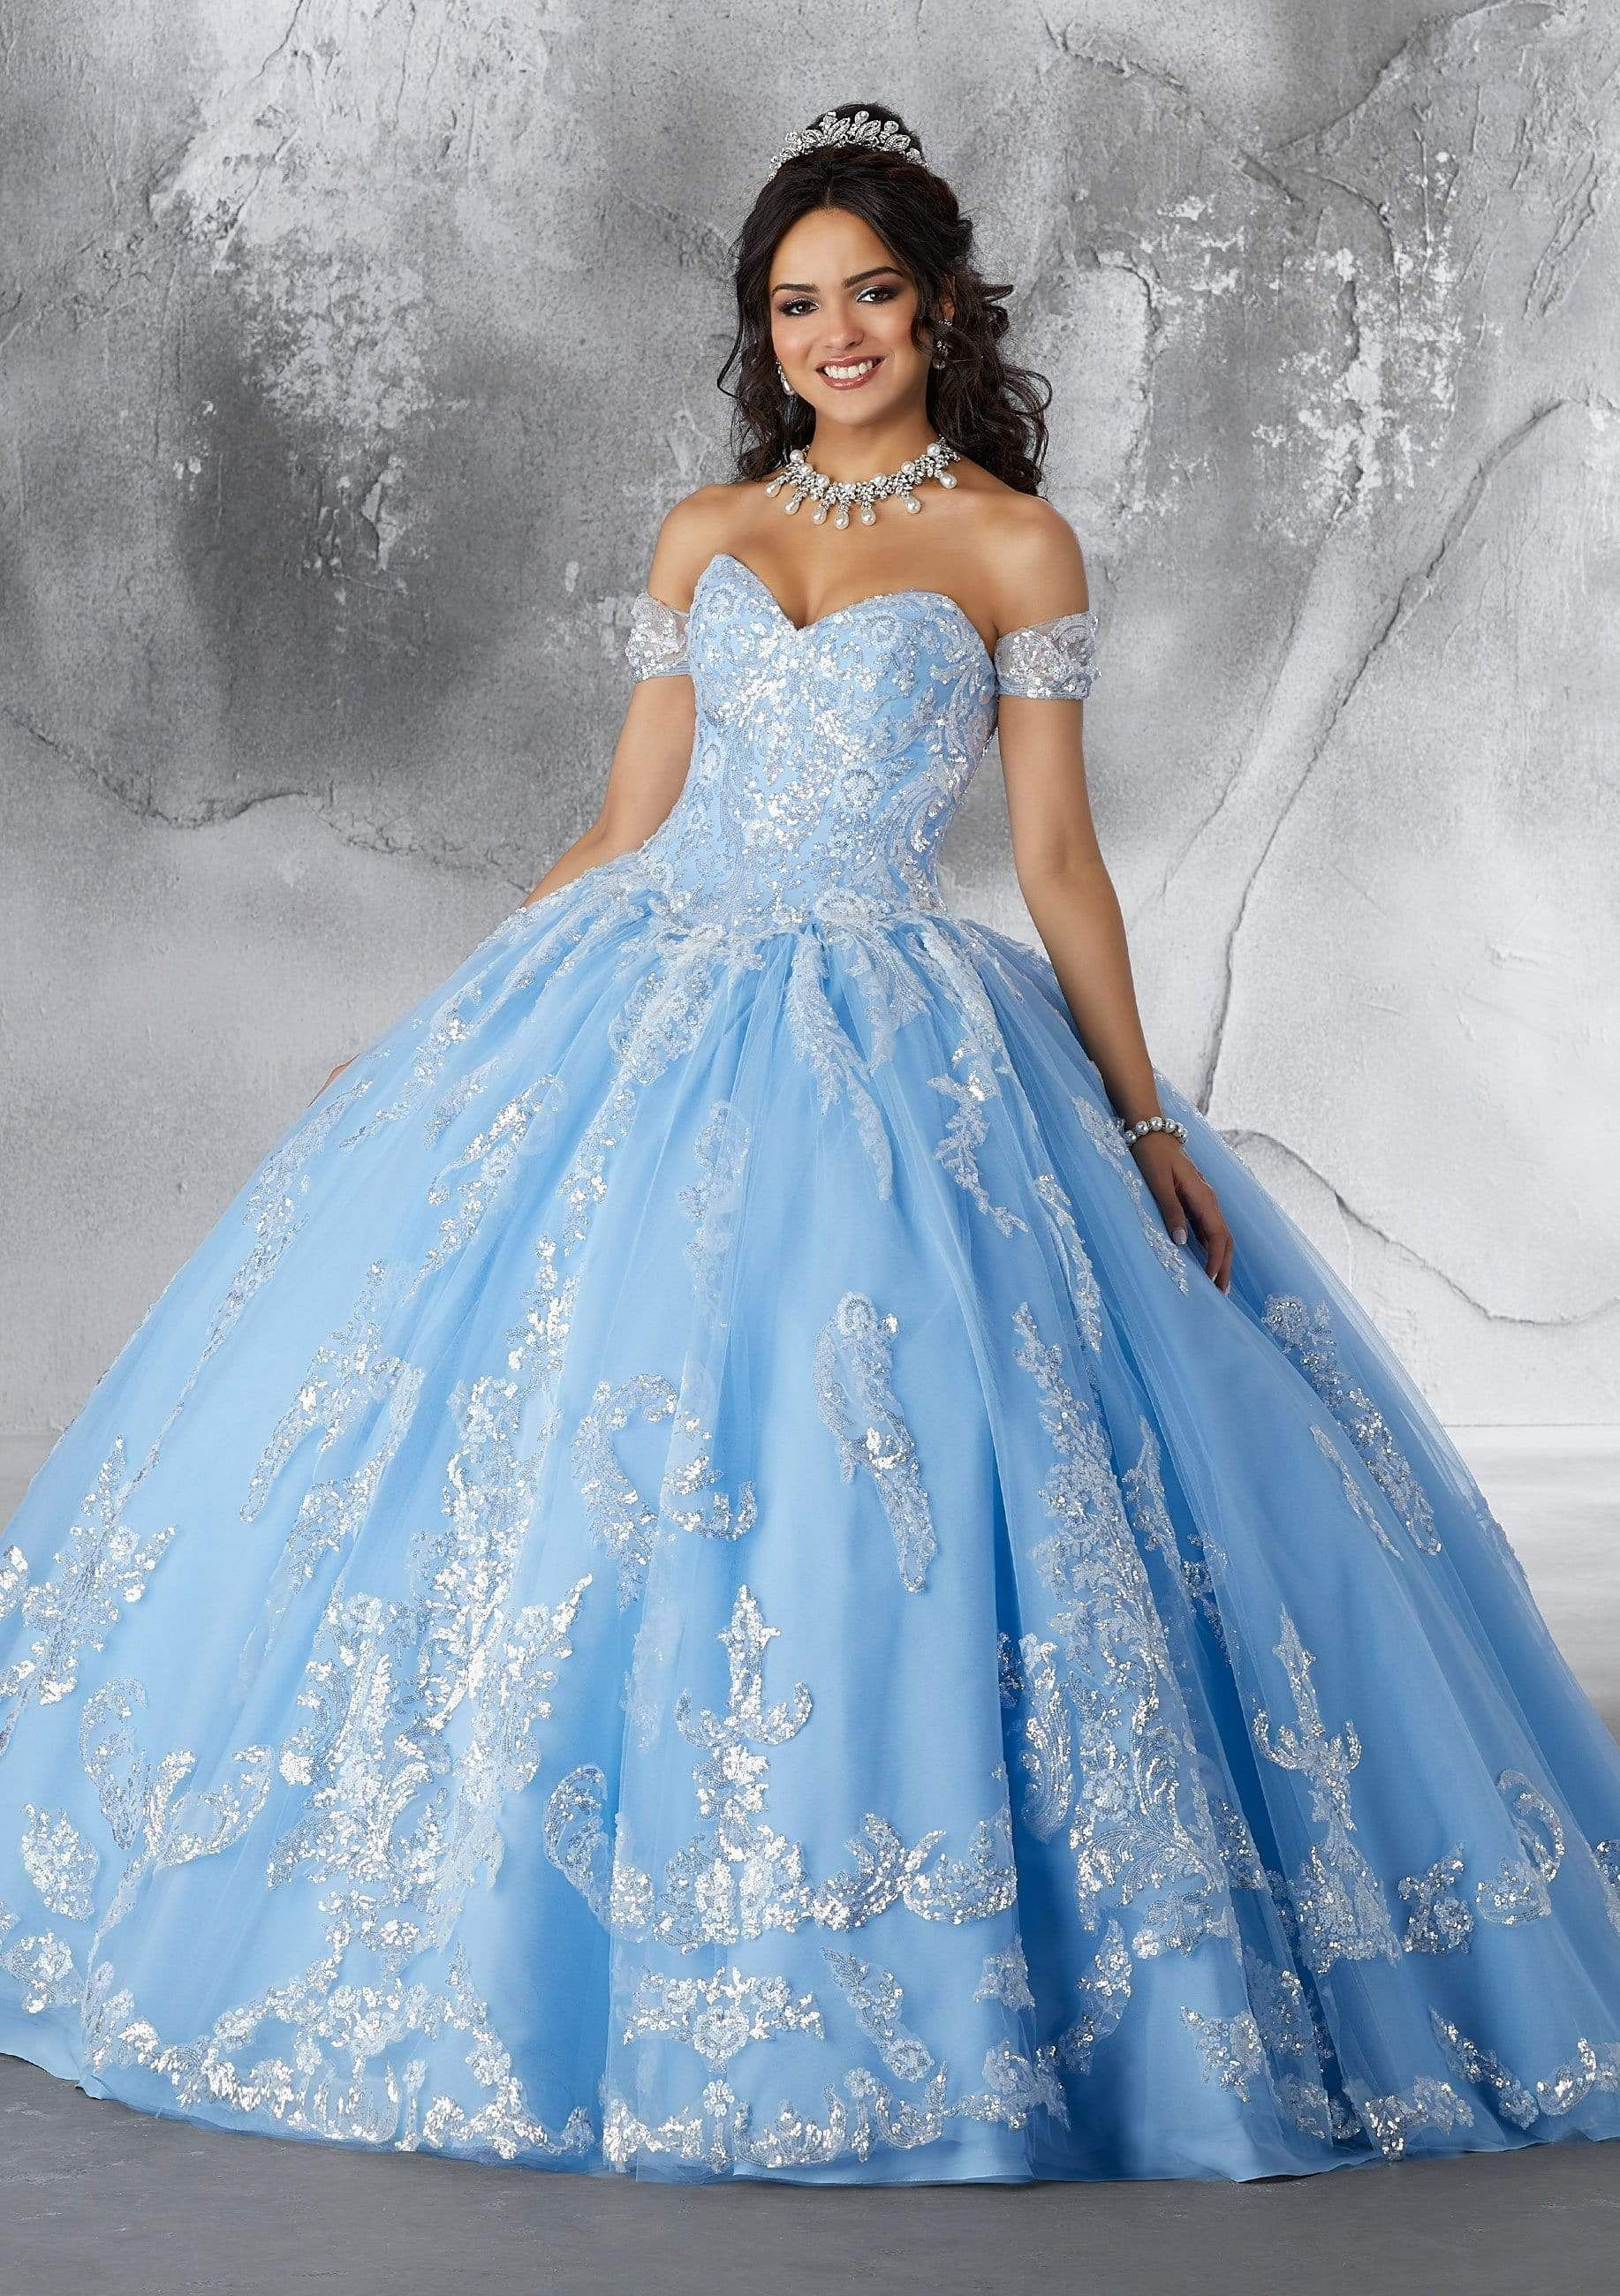 Vizcaya By Mori Lee 89186 Sequined Motif Tulle Ballgown In 2021 Quinceanera Dresses Blue Dresses Quinceanera Blue Quince Dresses [ 2600 x 1834 Pixel ]